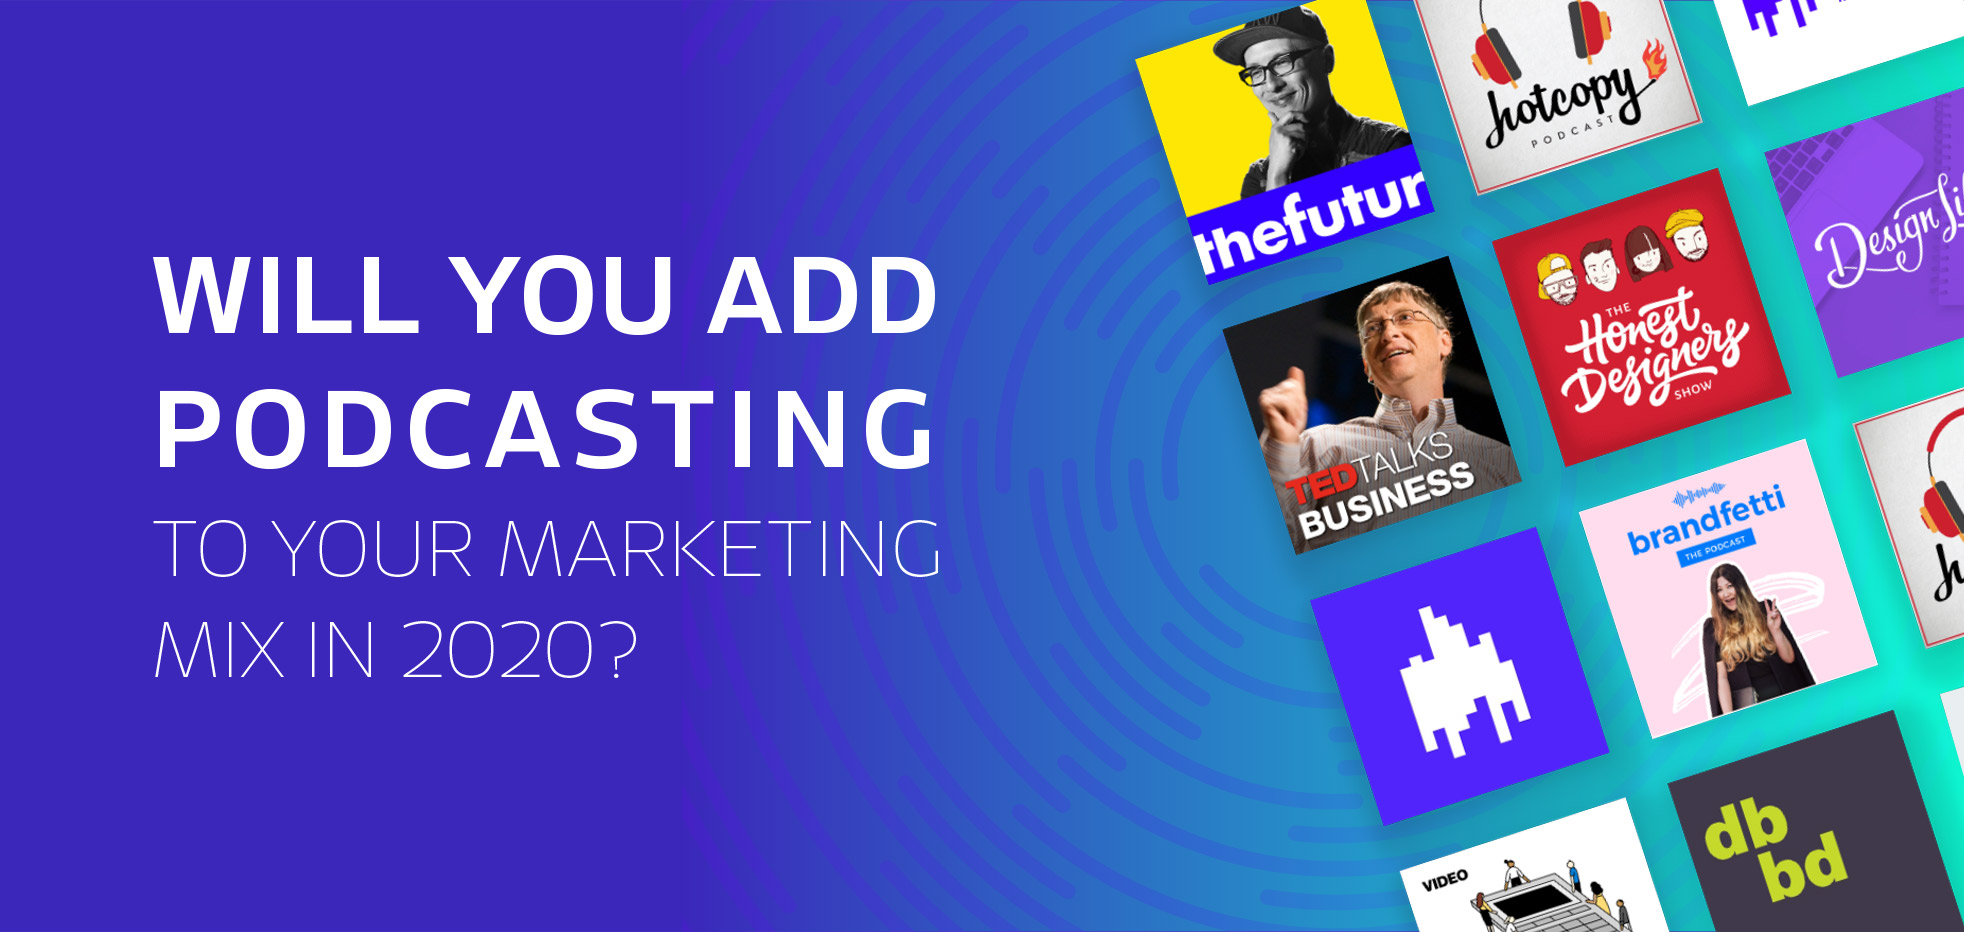 Will you add podcasting to your marketing mix